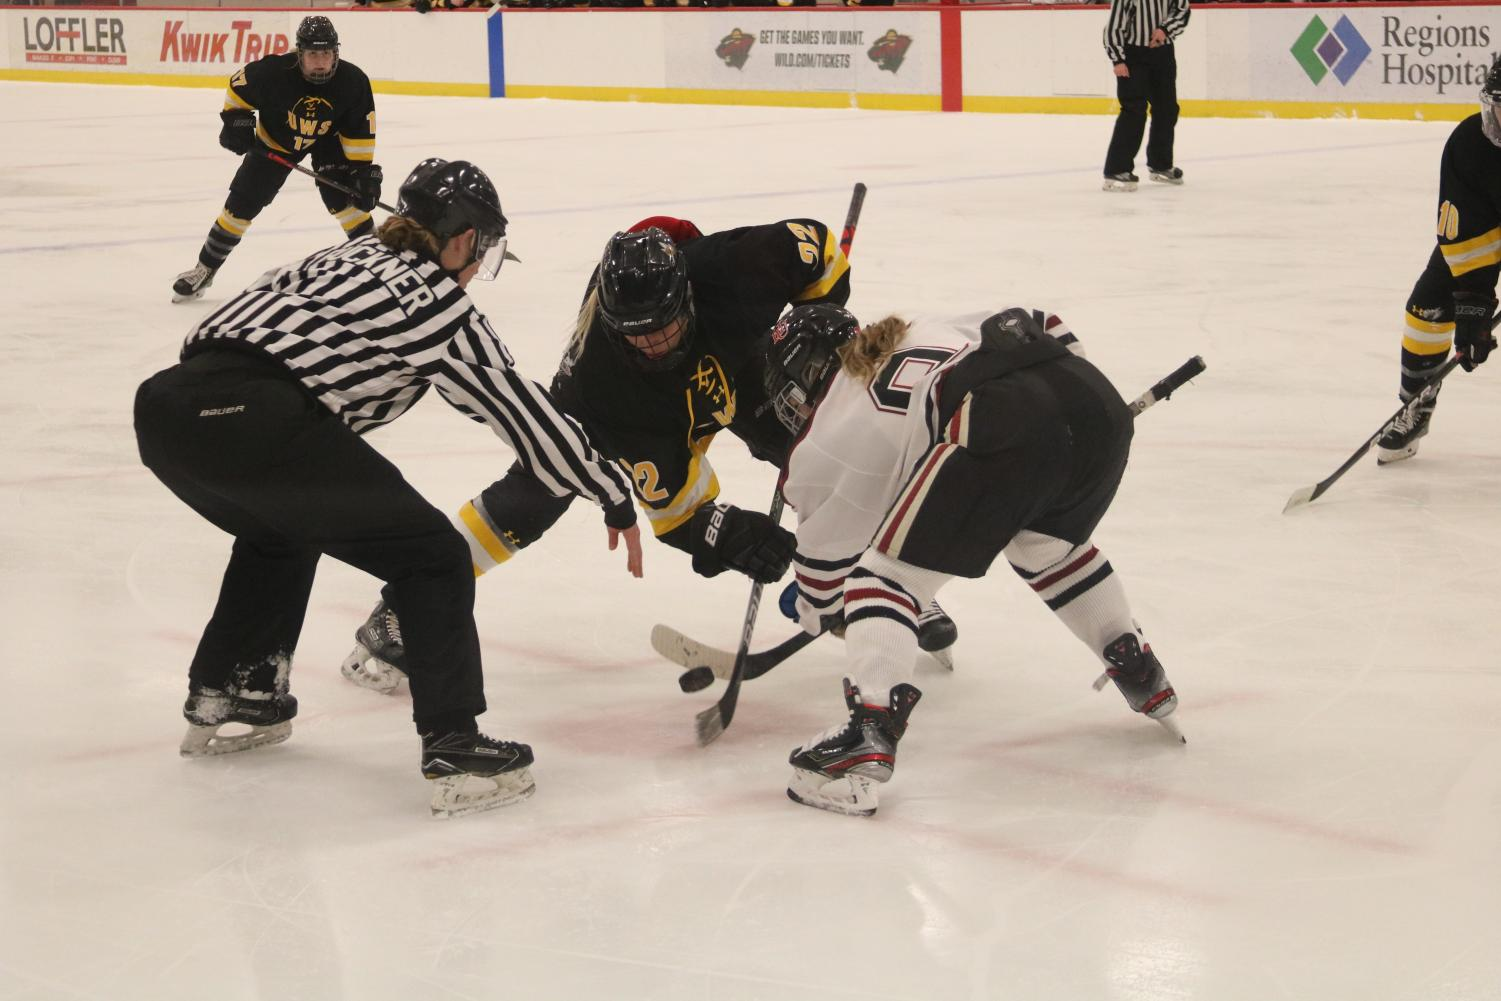 Senior Jordan Hansen fights opponent during face-off.